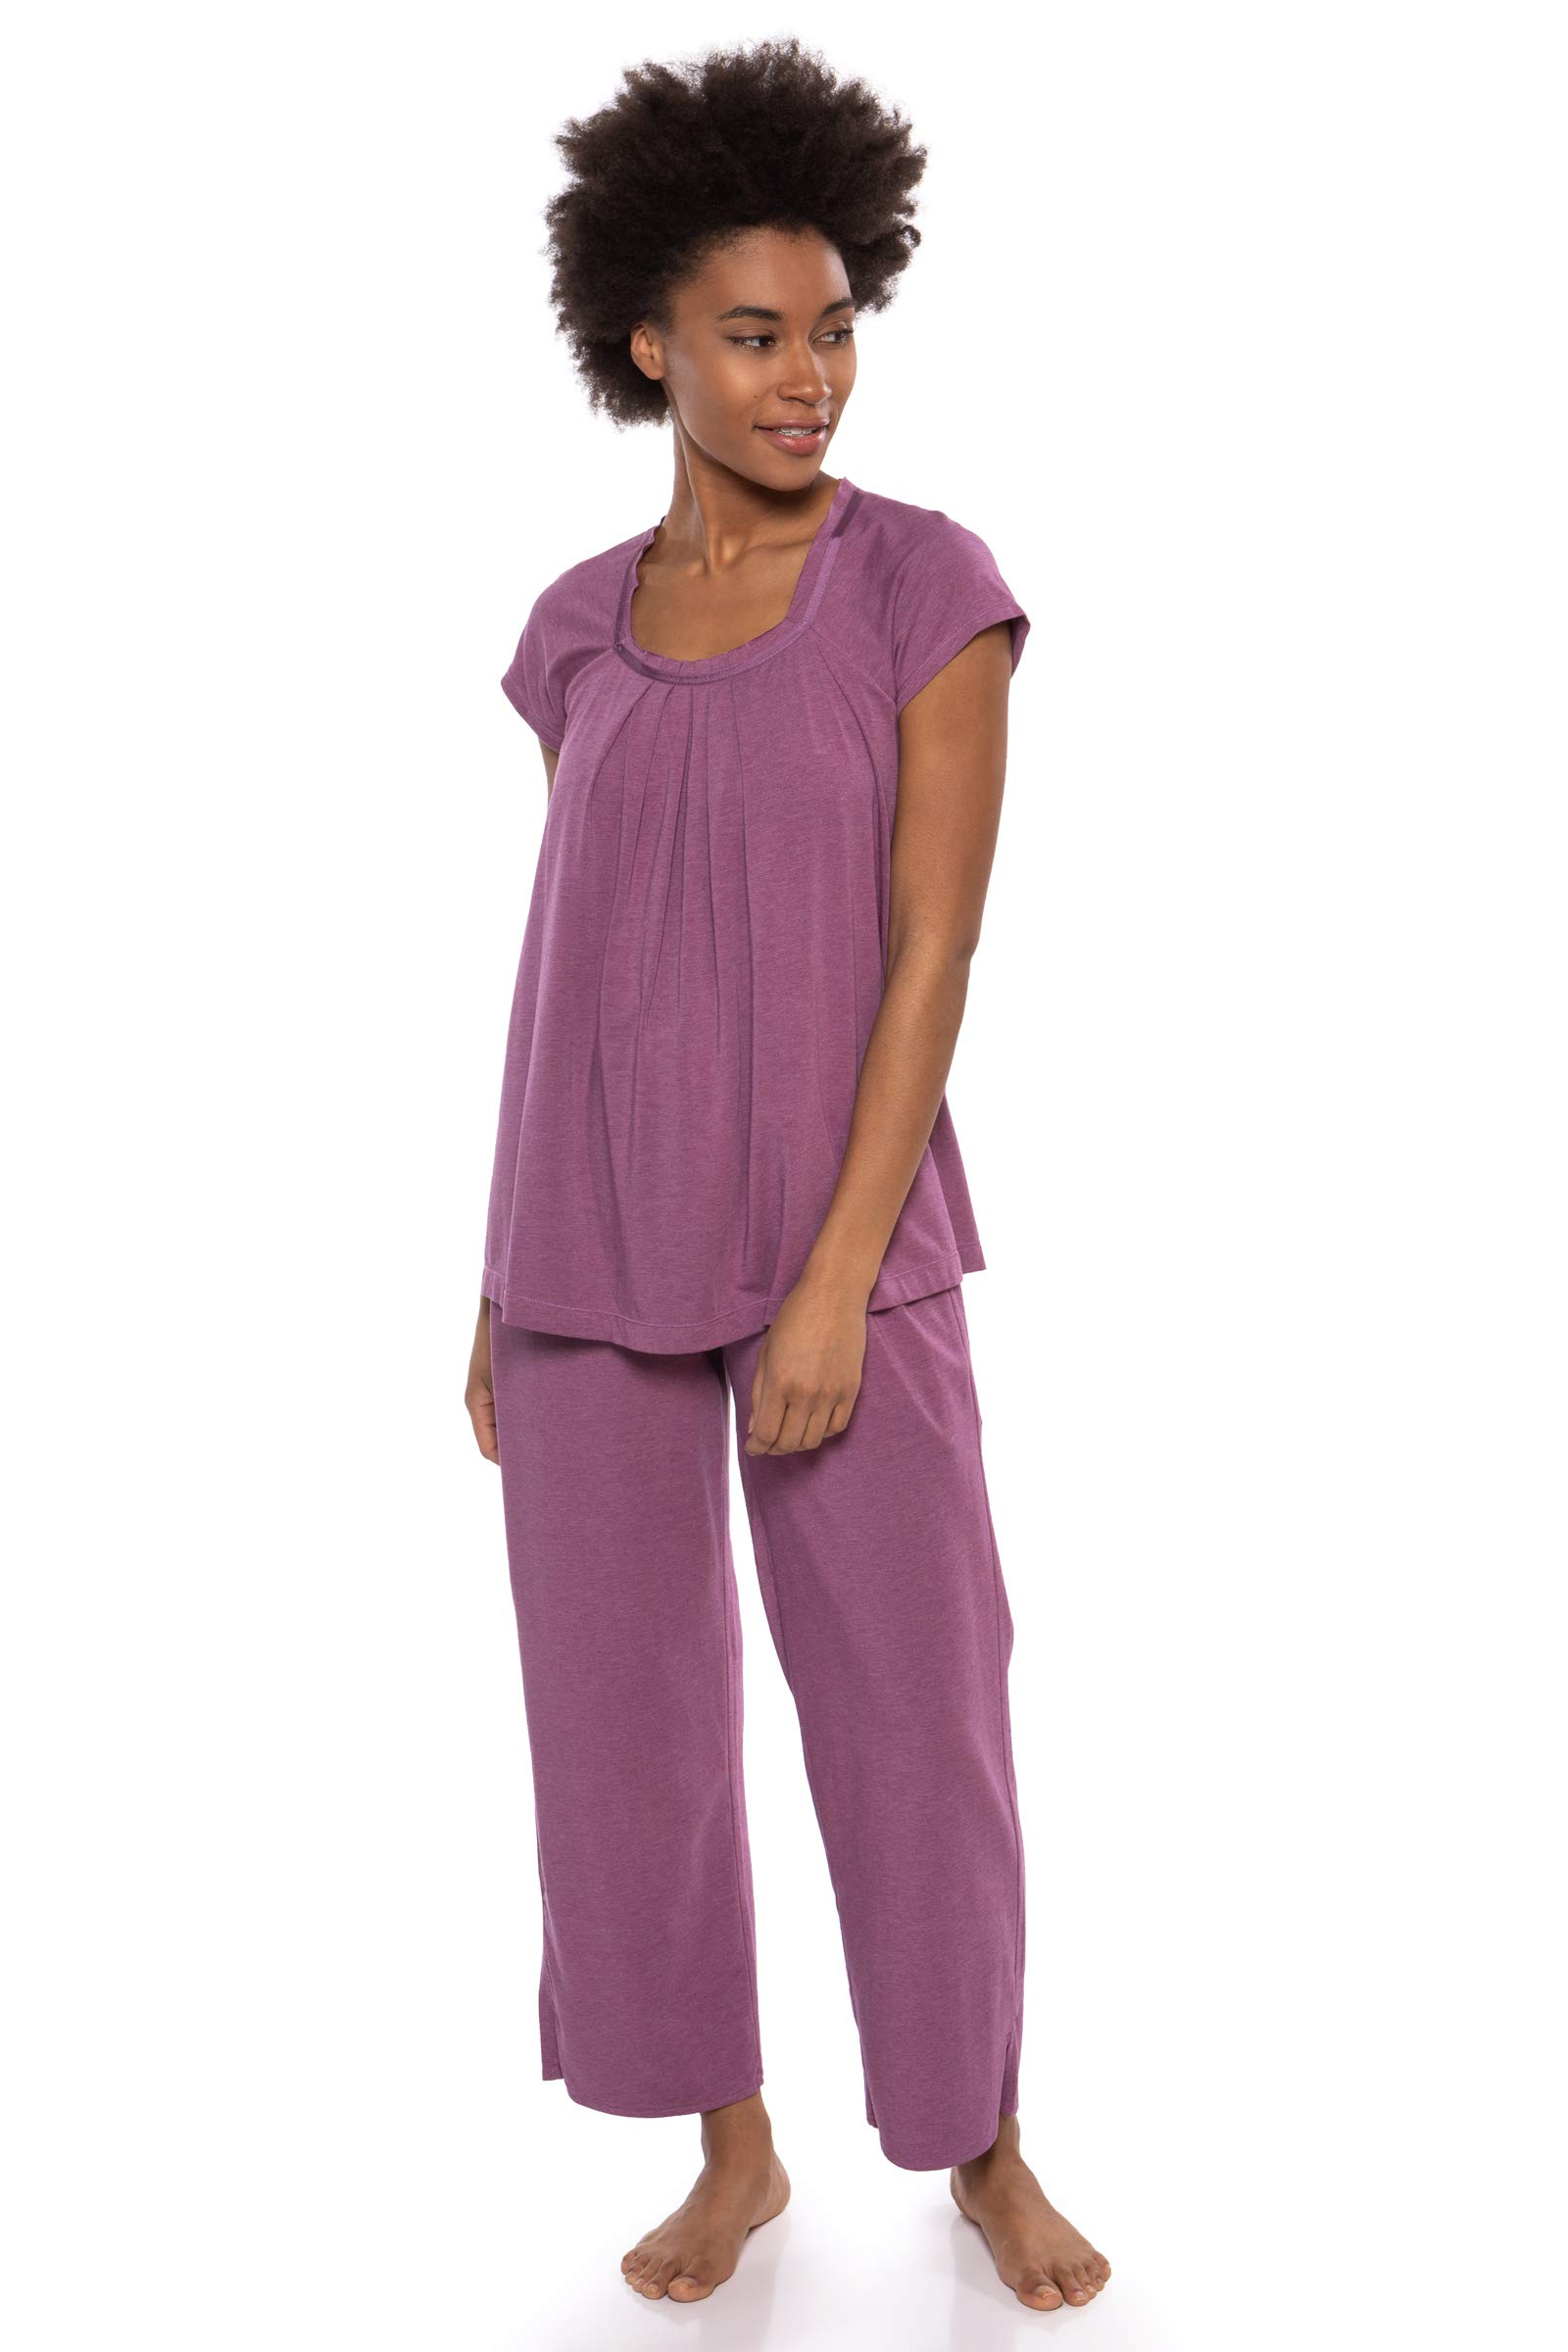 acd377c78e Women s Pajamas in Bamboo Viscose (Bamboo Bliss) Cozy Sleepwear Set by  Texere